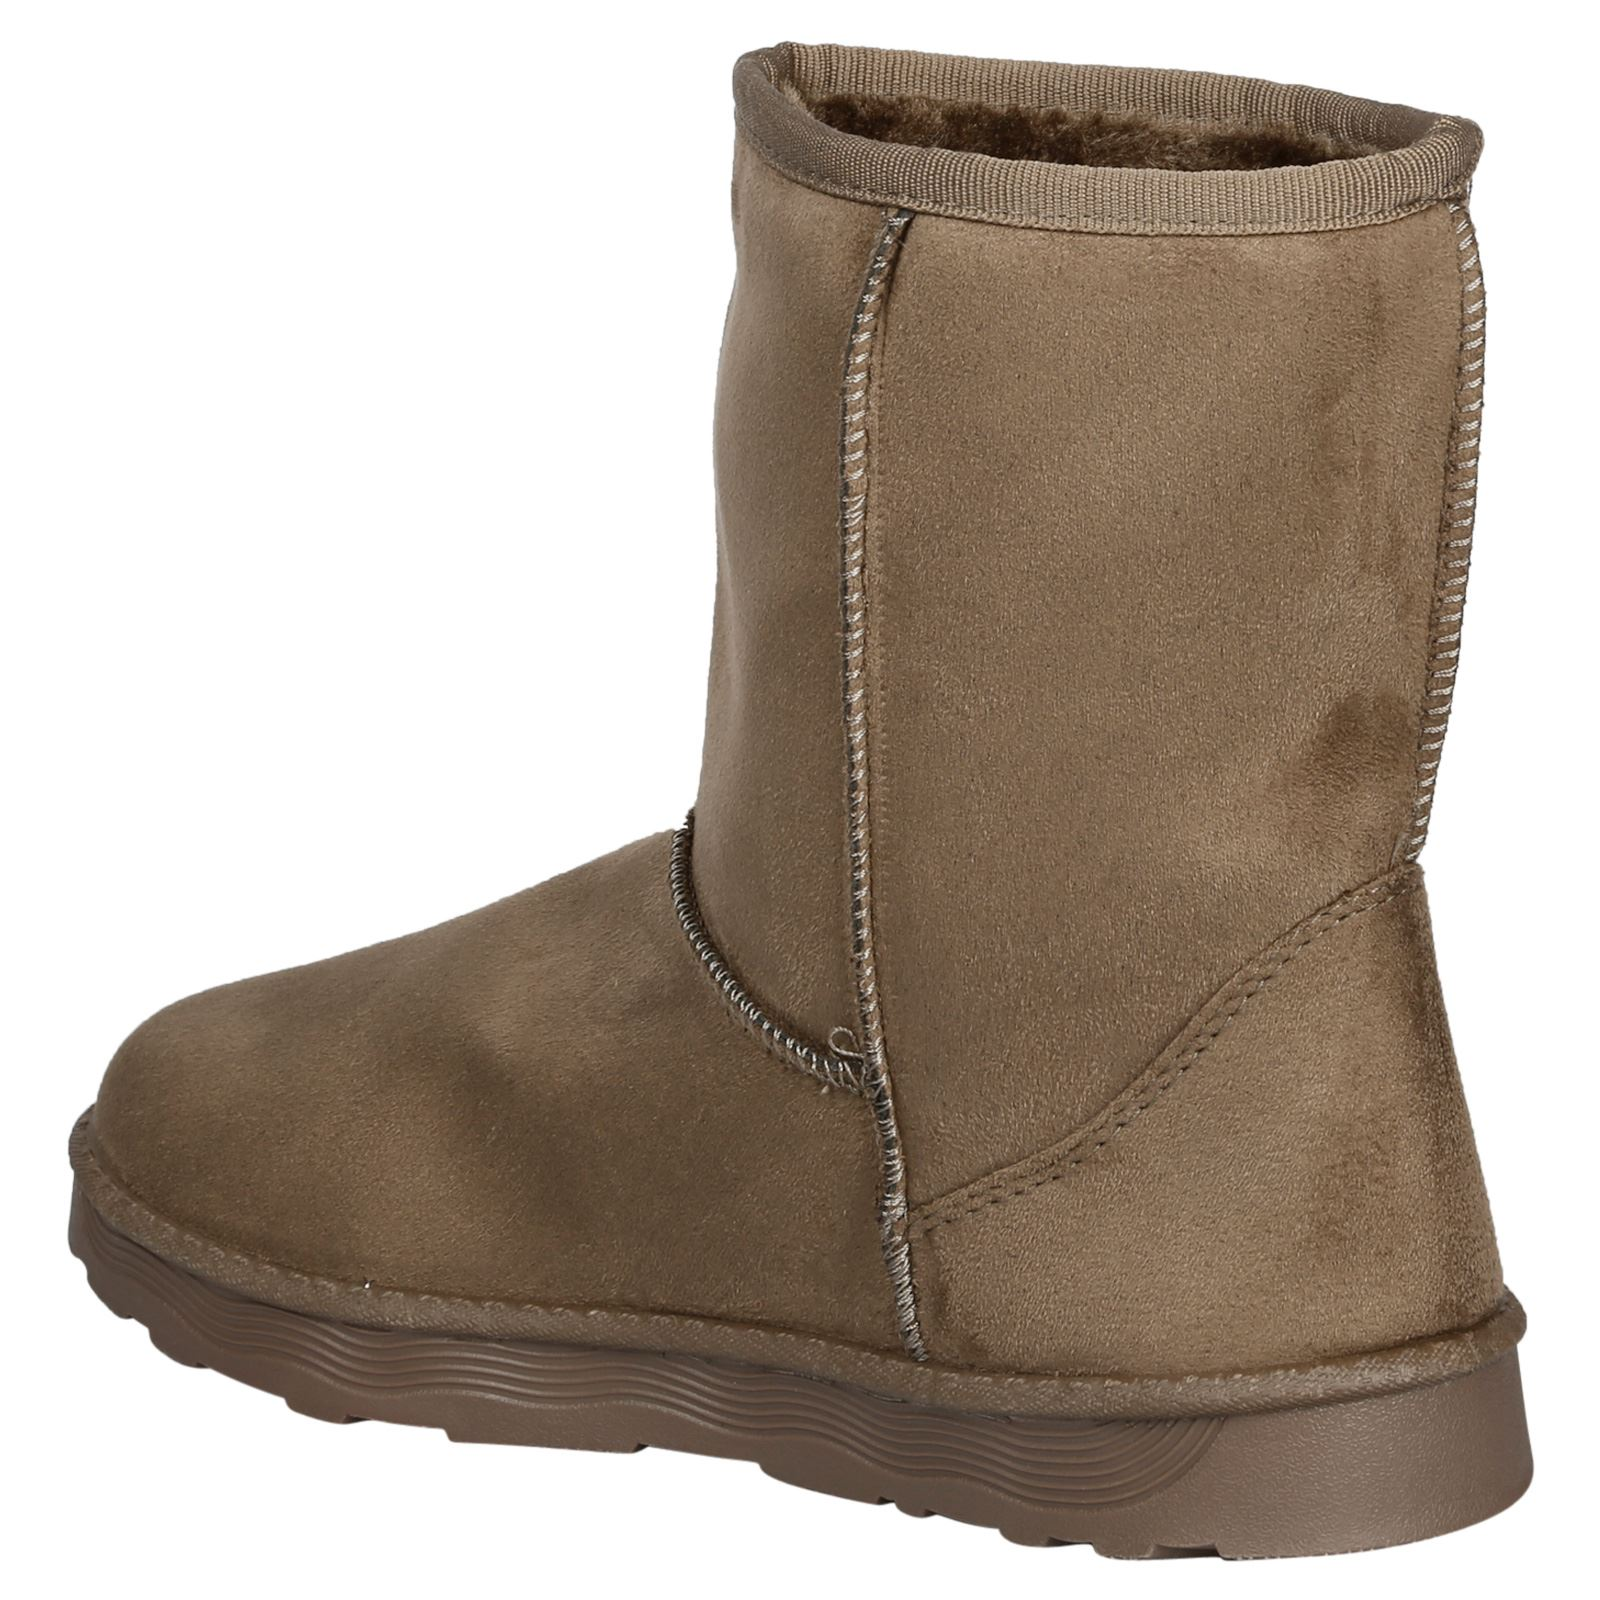 Paisleigh-Womens-Platfrom-Flat-Fur-Lined-Pull-On-Snug-Snow-Boots-Casual-Ladies thumbnail 16